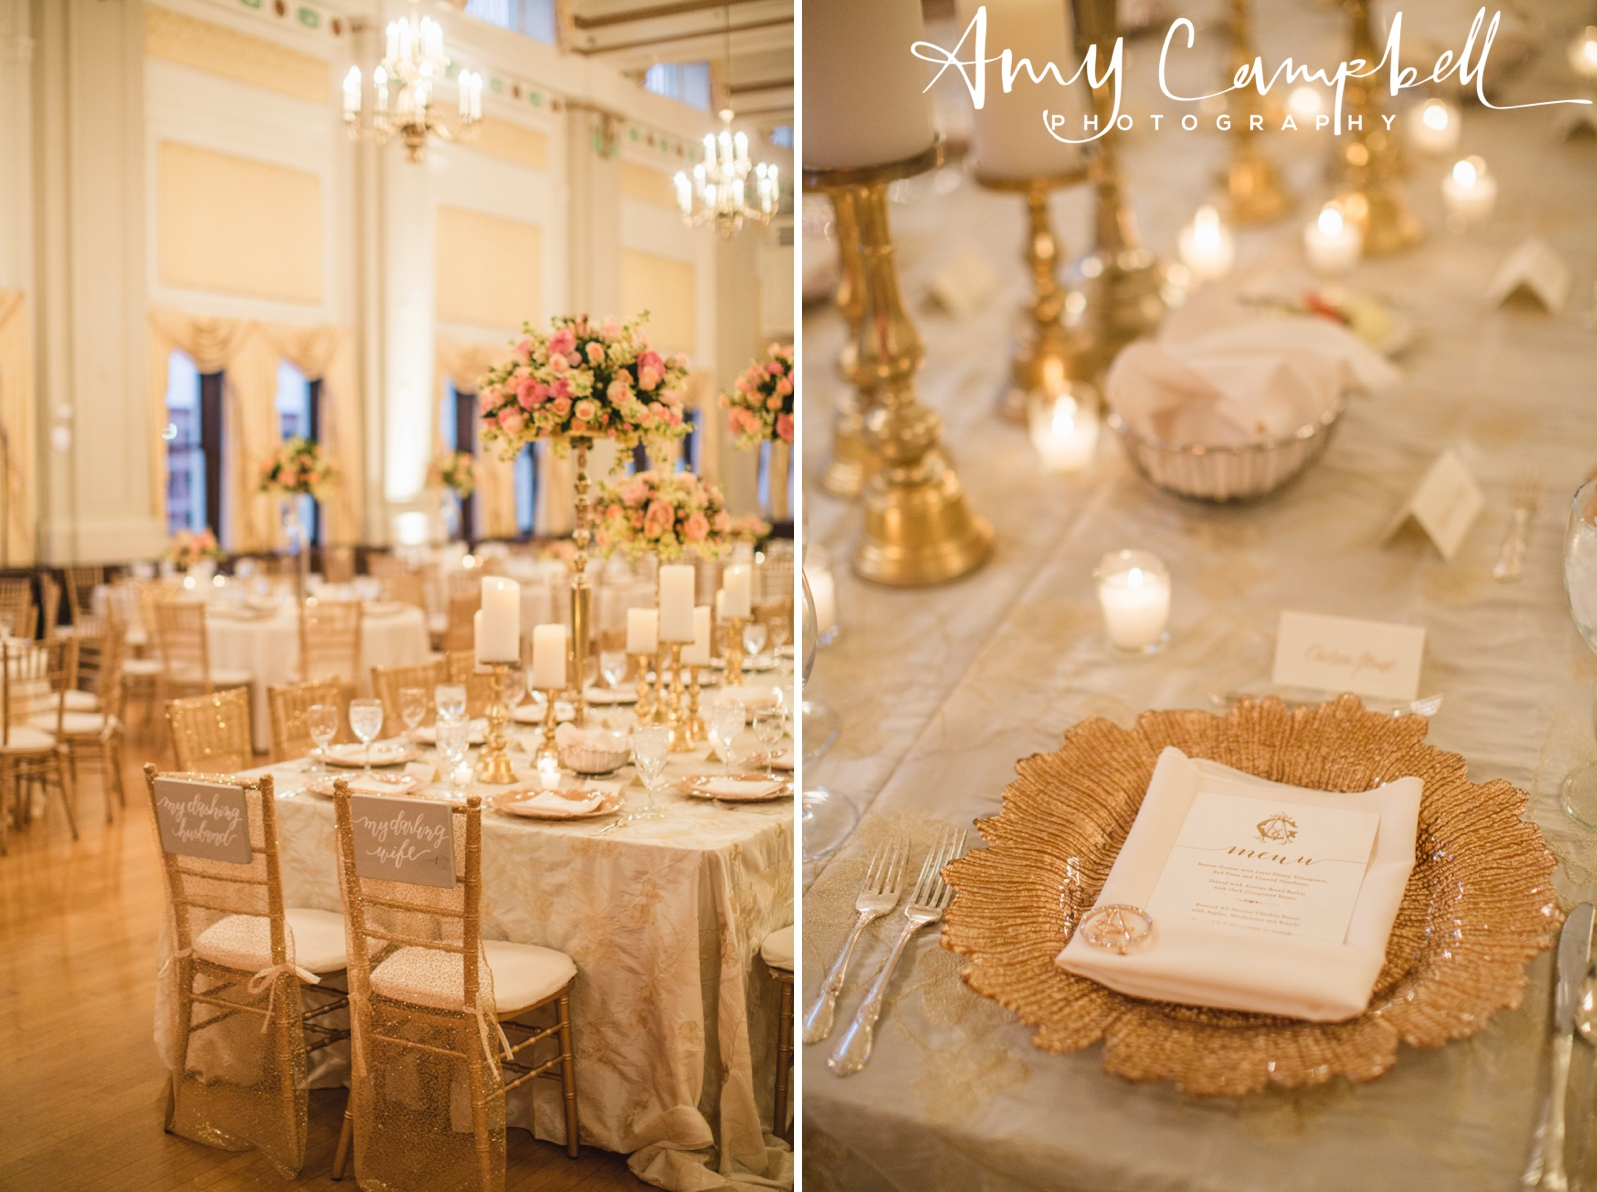 chelseamike_wedss_pics_amycampbellphotography_102.jpg